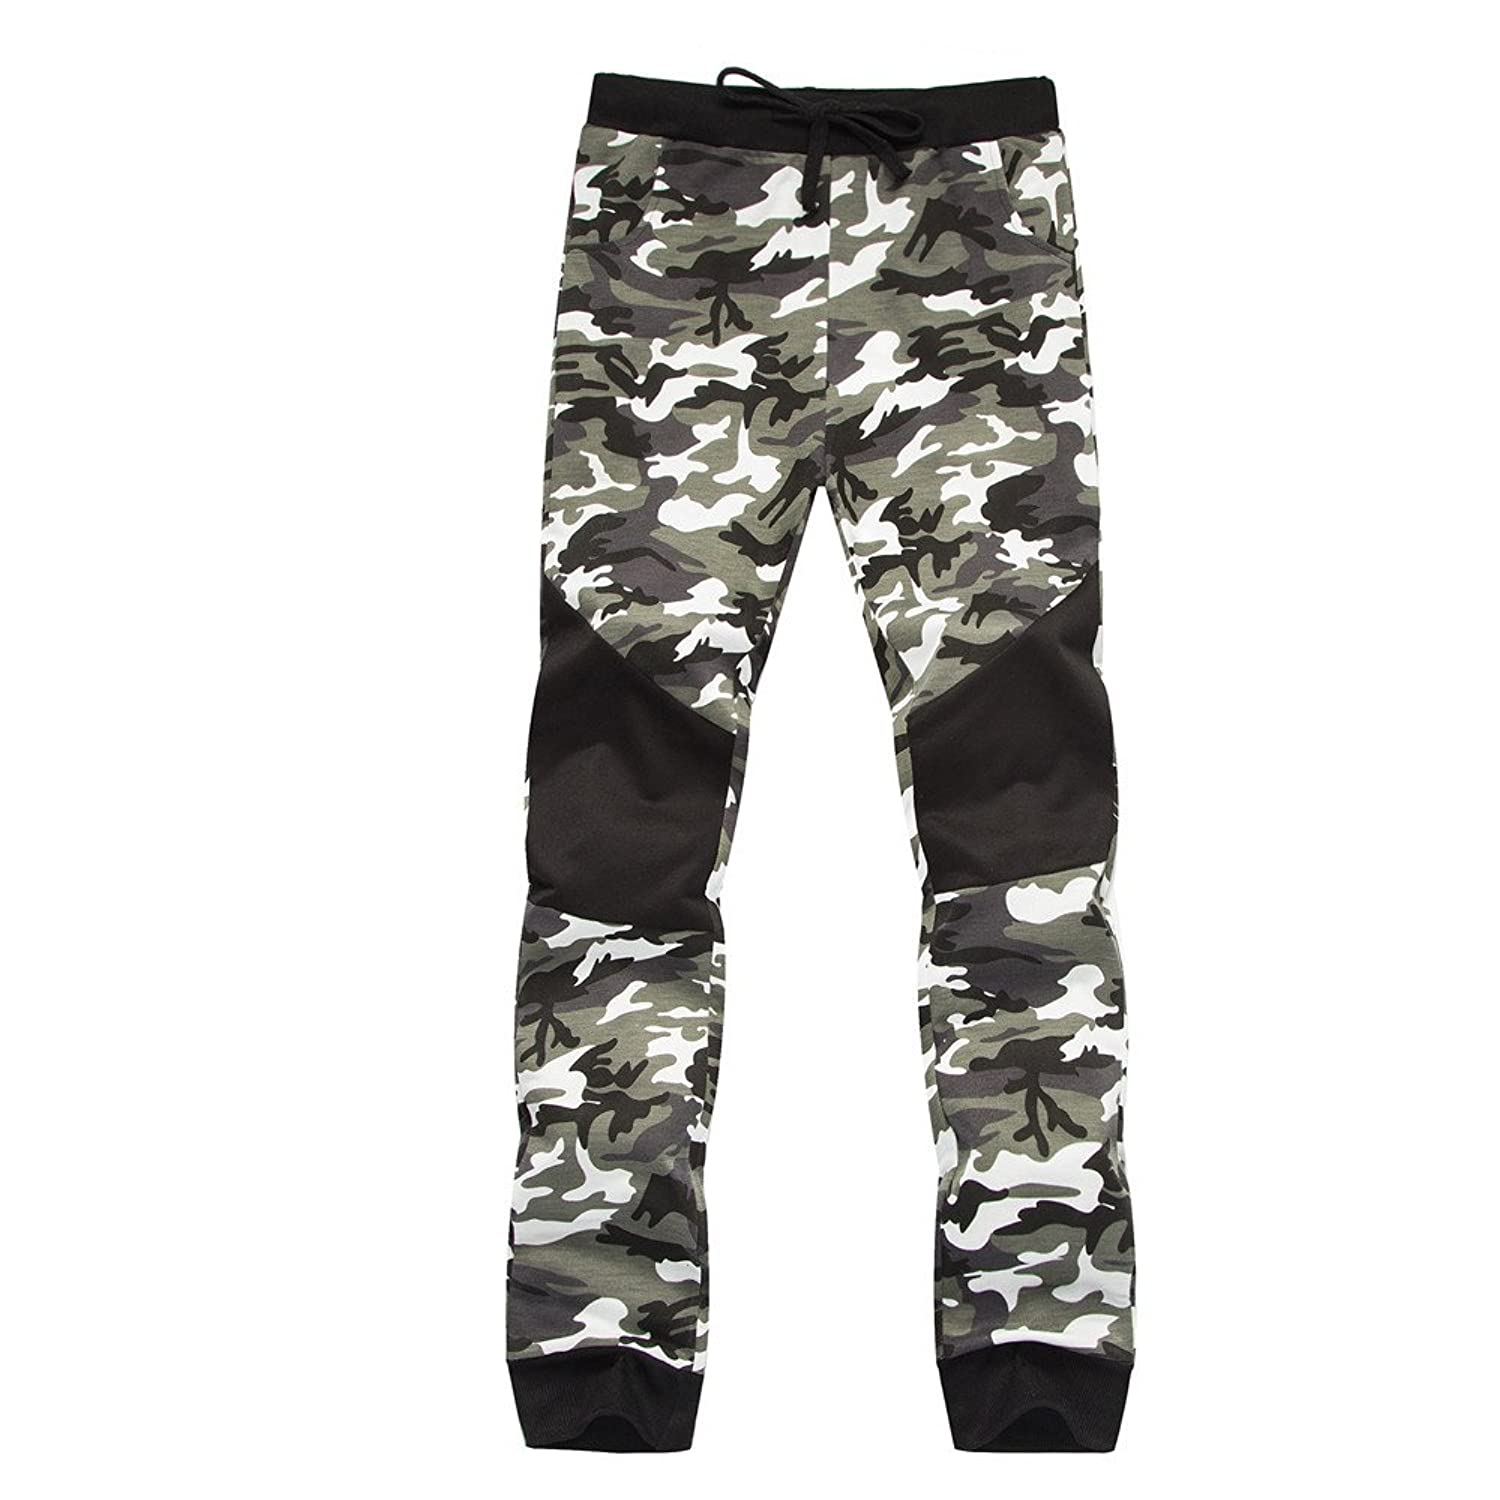 fa7b11716289d Top7: Serzul Clearance Men Camouflage Pants Spring Joggers Casual Sweatpants